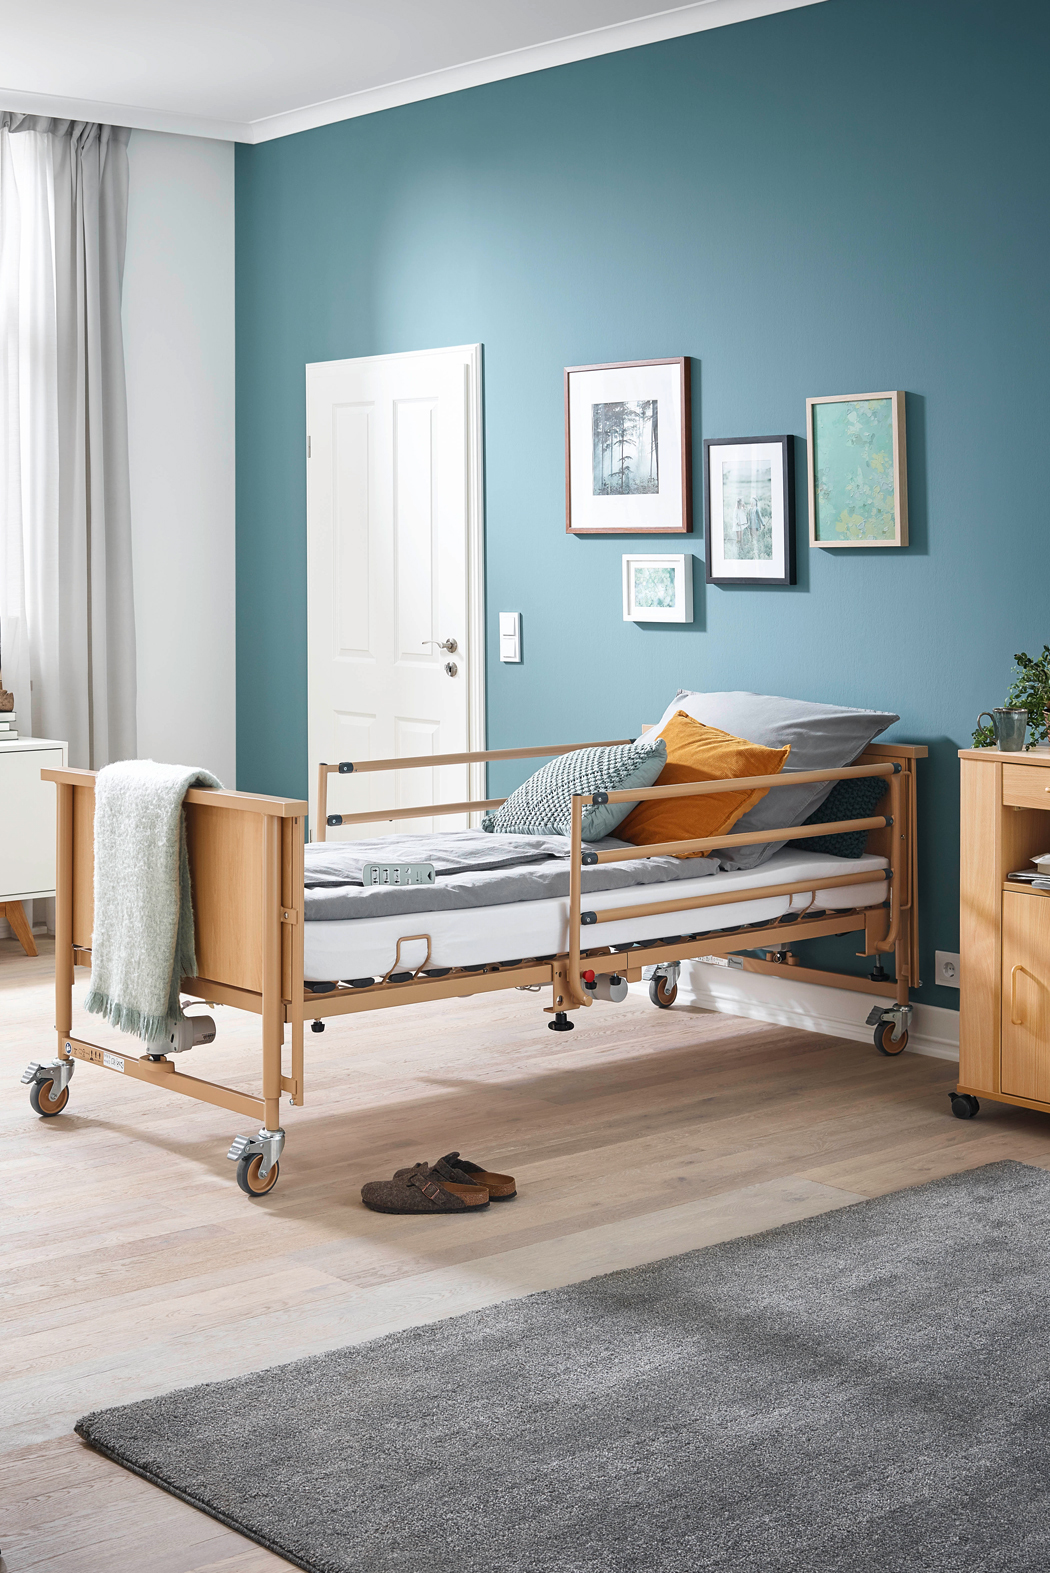 Optional adaptable safety side for the Dali care bed